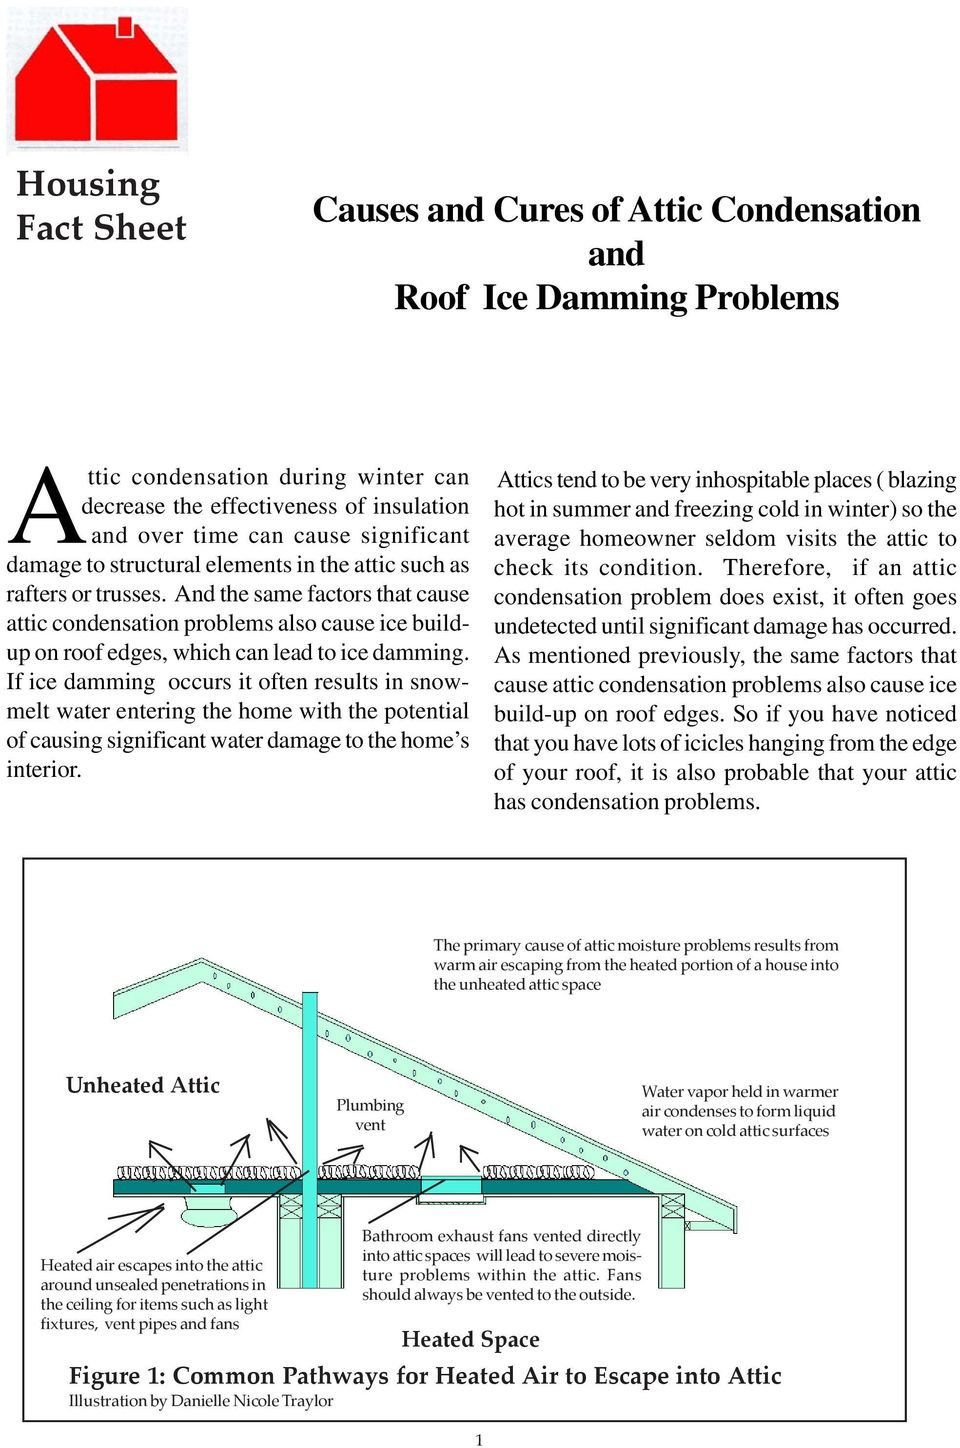 And the same factors that cause attic condensation problems also cause ice buildup on roof edges, which can lead to ice damming.